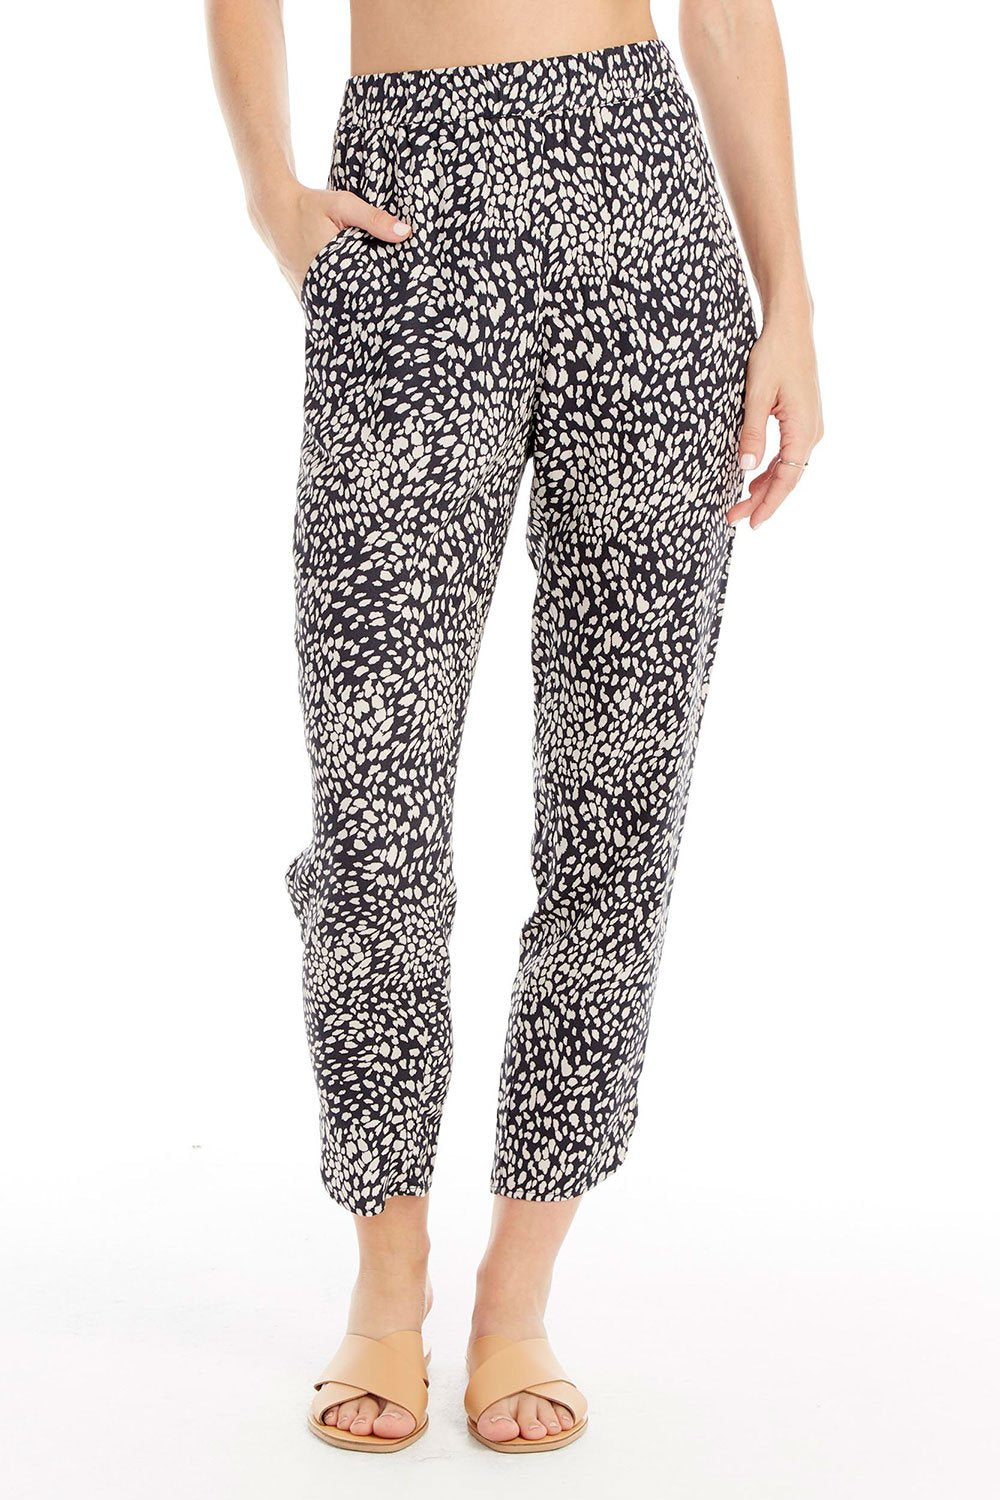 Saltwater Luxe Pull-on pant